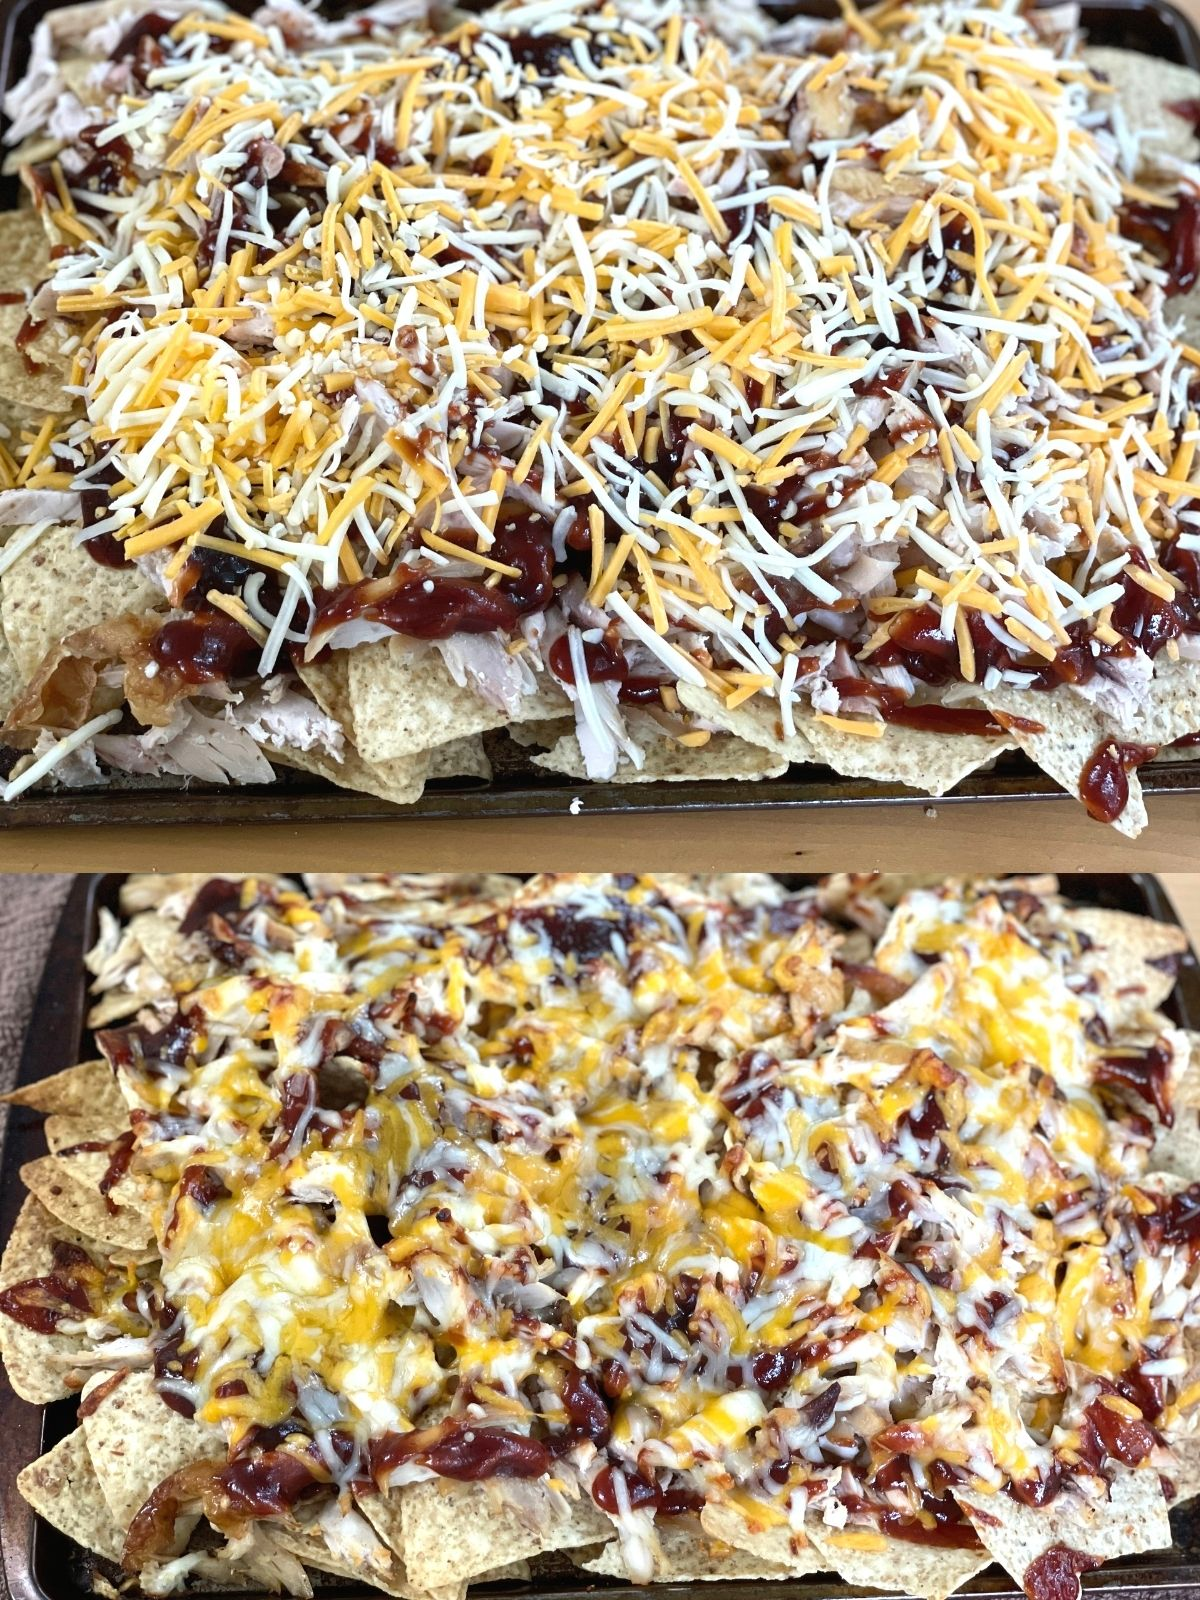 The top picture is a sheet pan of bbq chicken nachos sprinkled with cheese before going into the oven. The bottom photo shows the same pan of nachos hot out of the oven with the cheese melted.